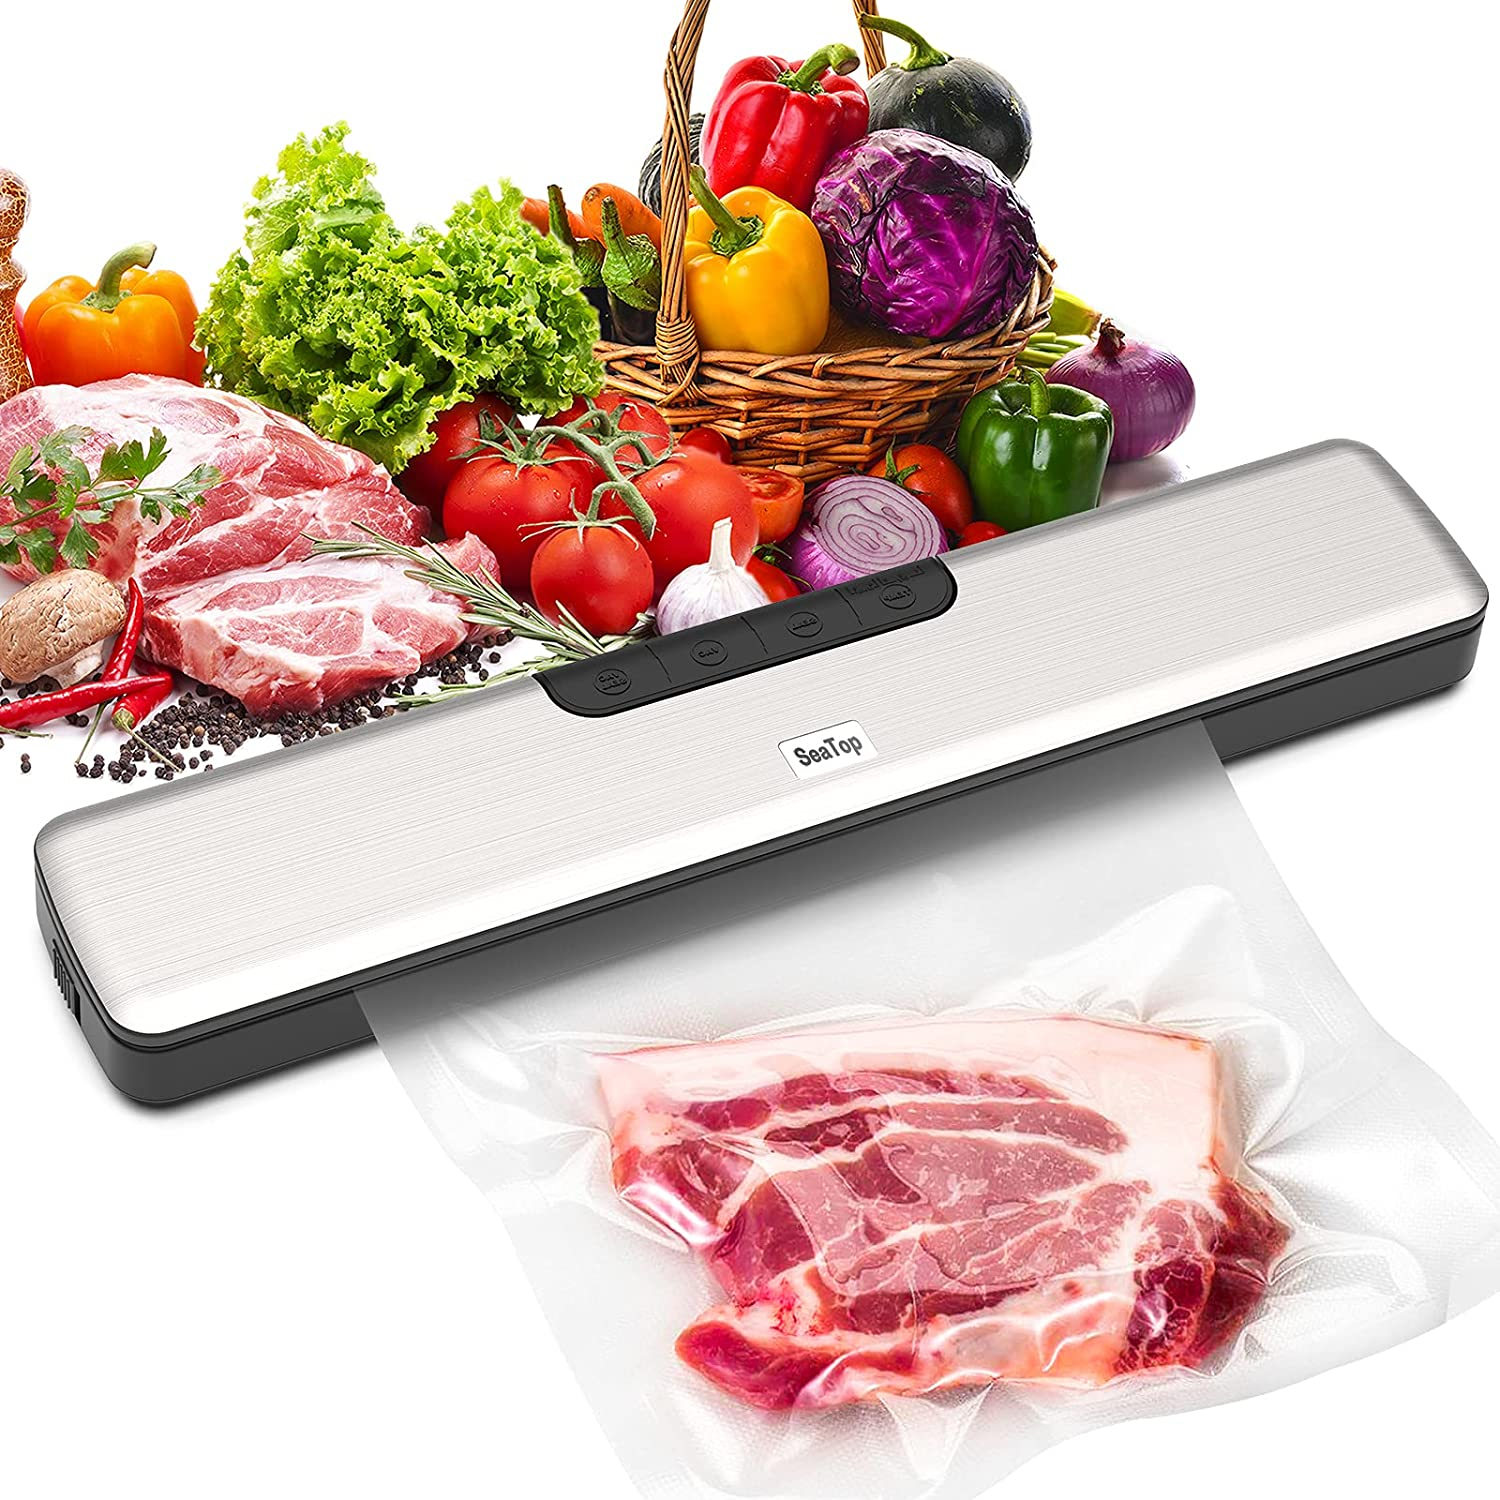 Food Vacuum Sealer Machine, Automatic Food Saver Machine with 15 PCS Vacuum Bags for Food Preservation with Starter Kit|Led Indicator Lights|Easy to Clean|Dry & Moist Food Modes Silver